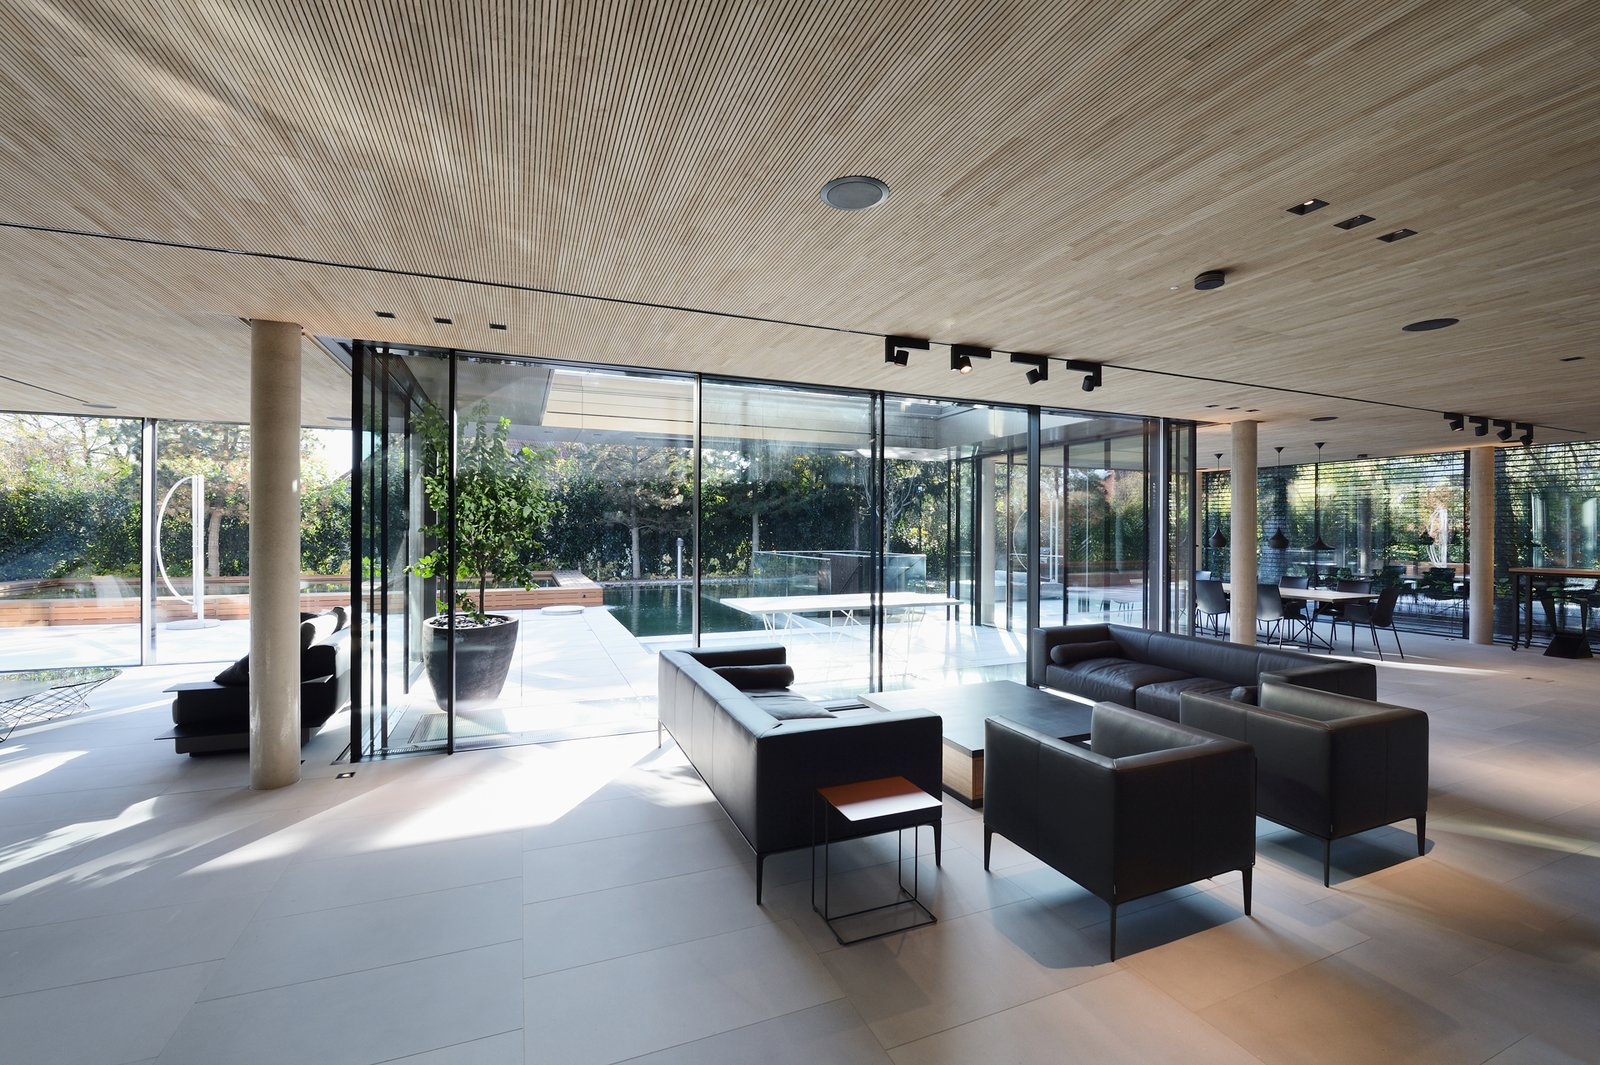 Living room, view to the pool  33 by Architect Zoran Bodrozic